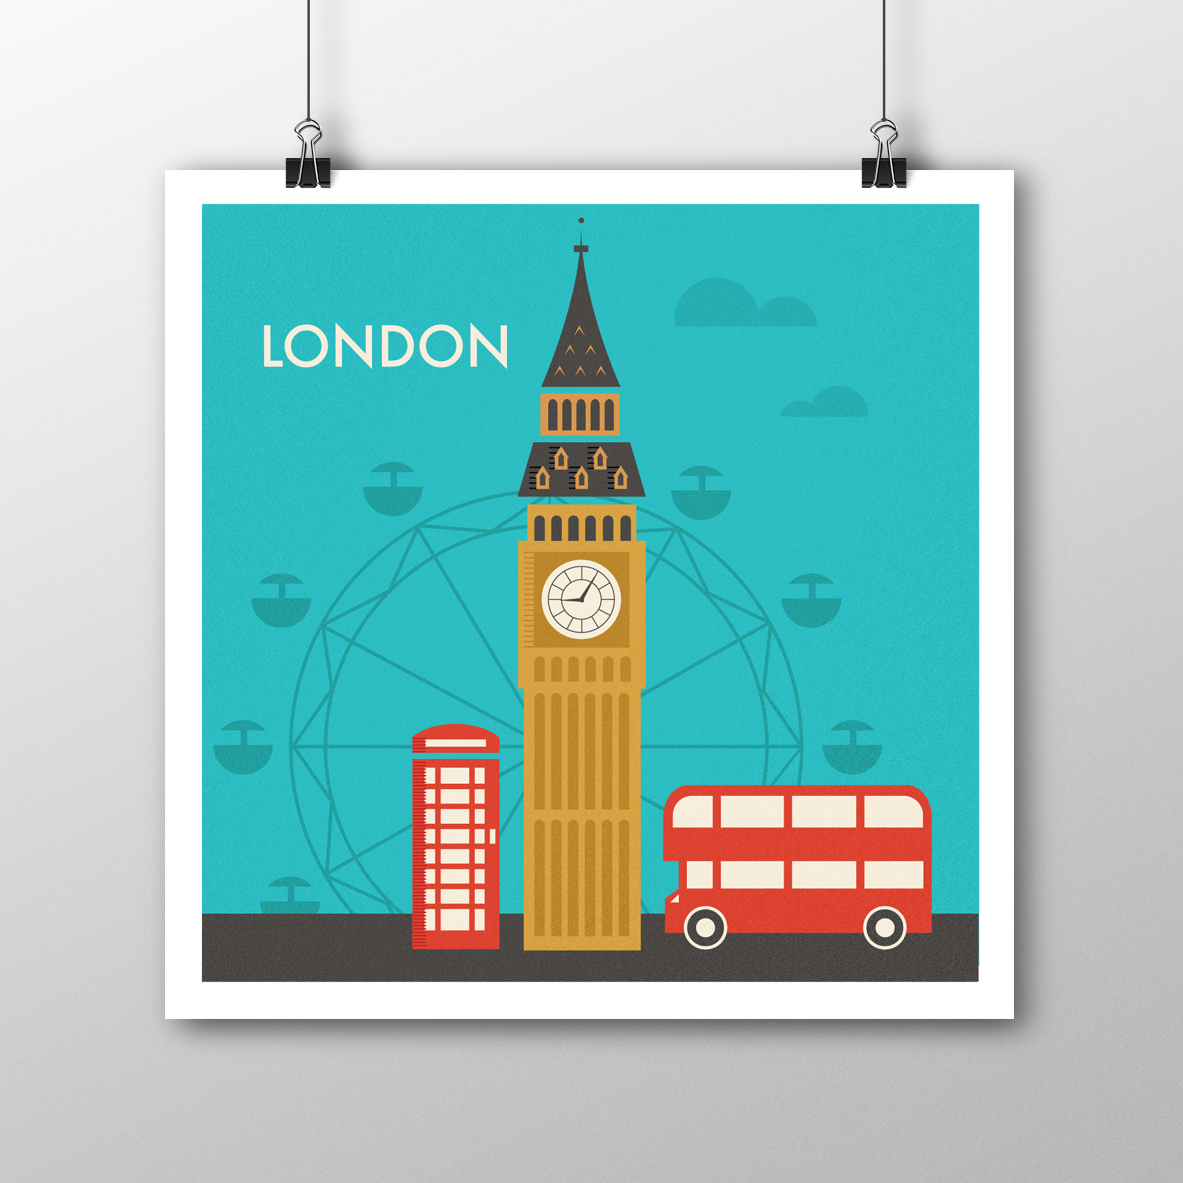 London Illustrated Digital Poster